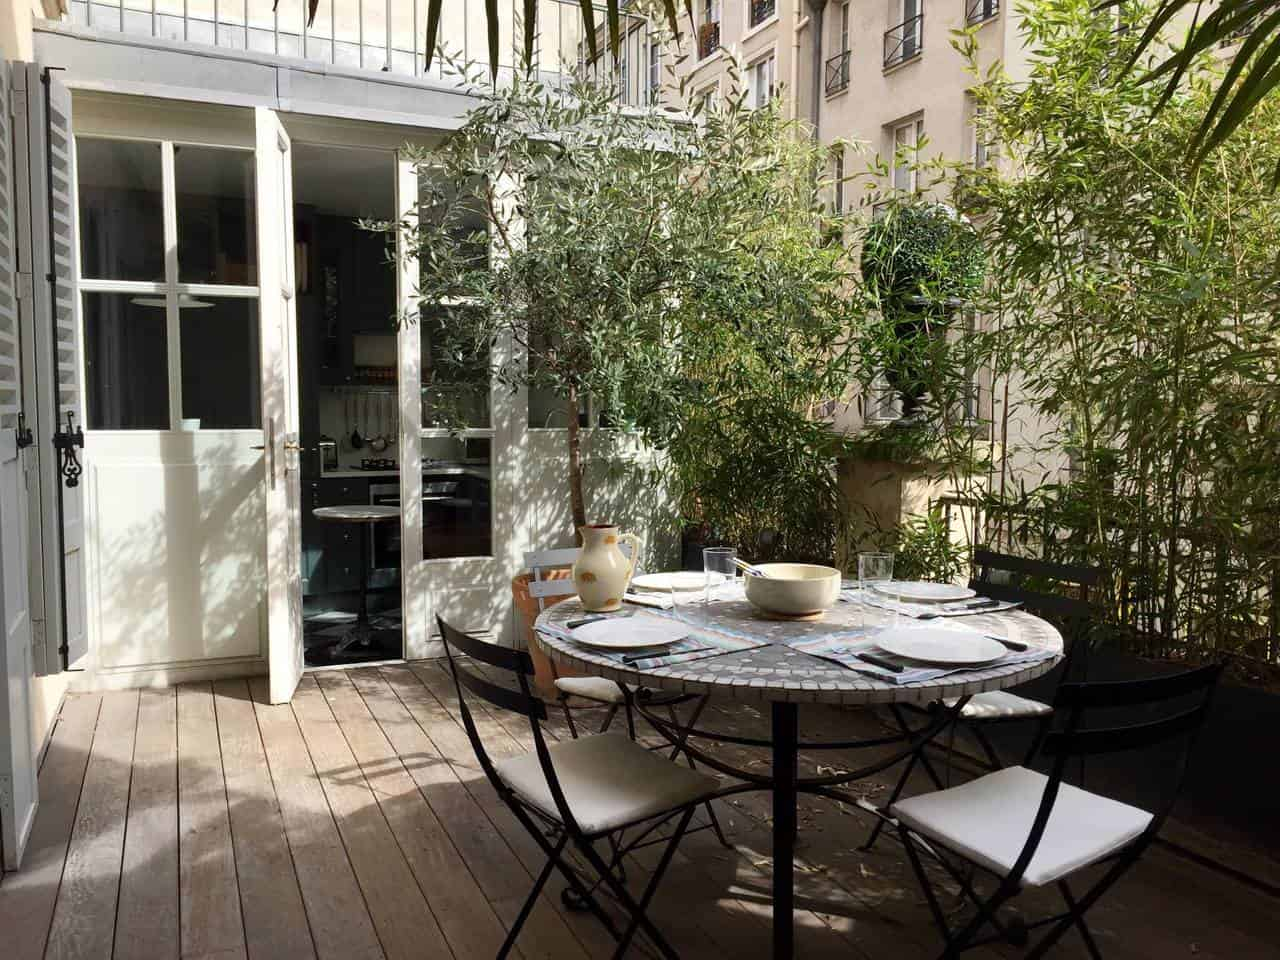 Wow! This Airbnb Paris listing near Latin Quarter is dreamy. You have to see the pictures!